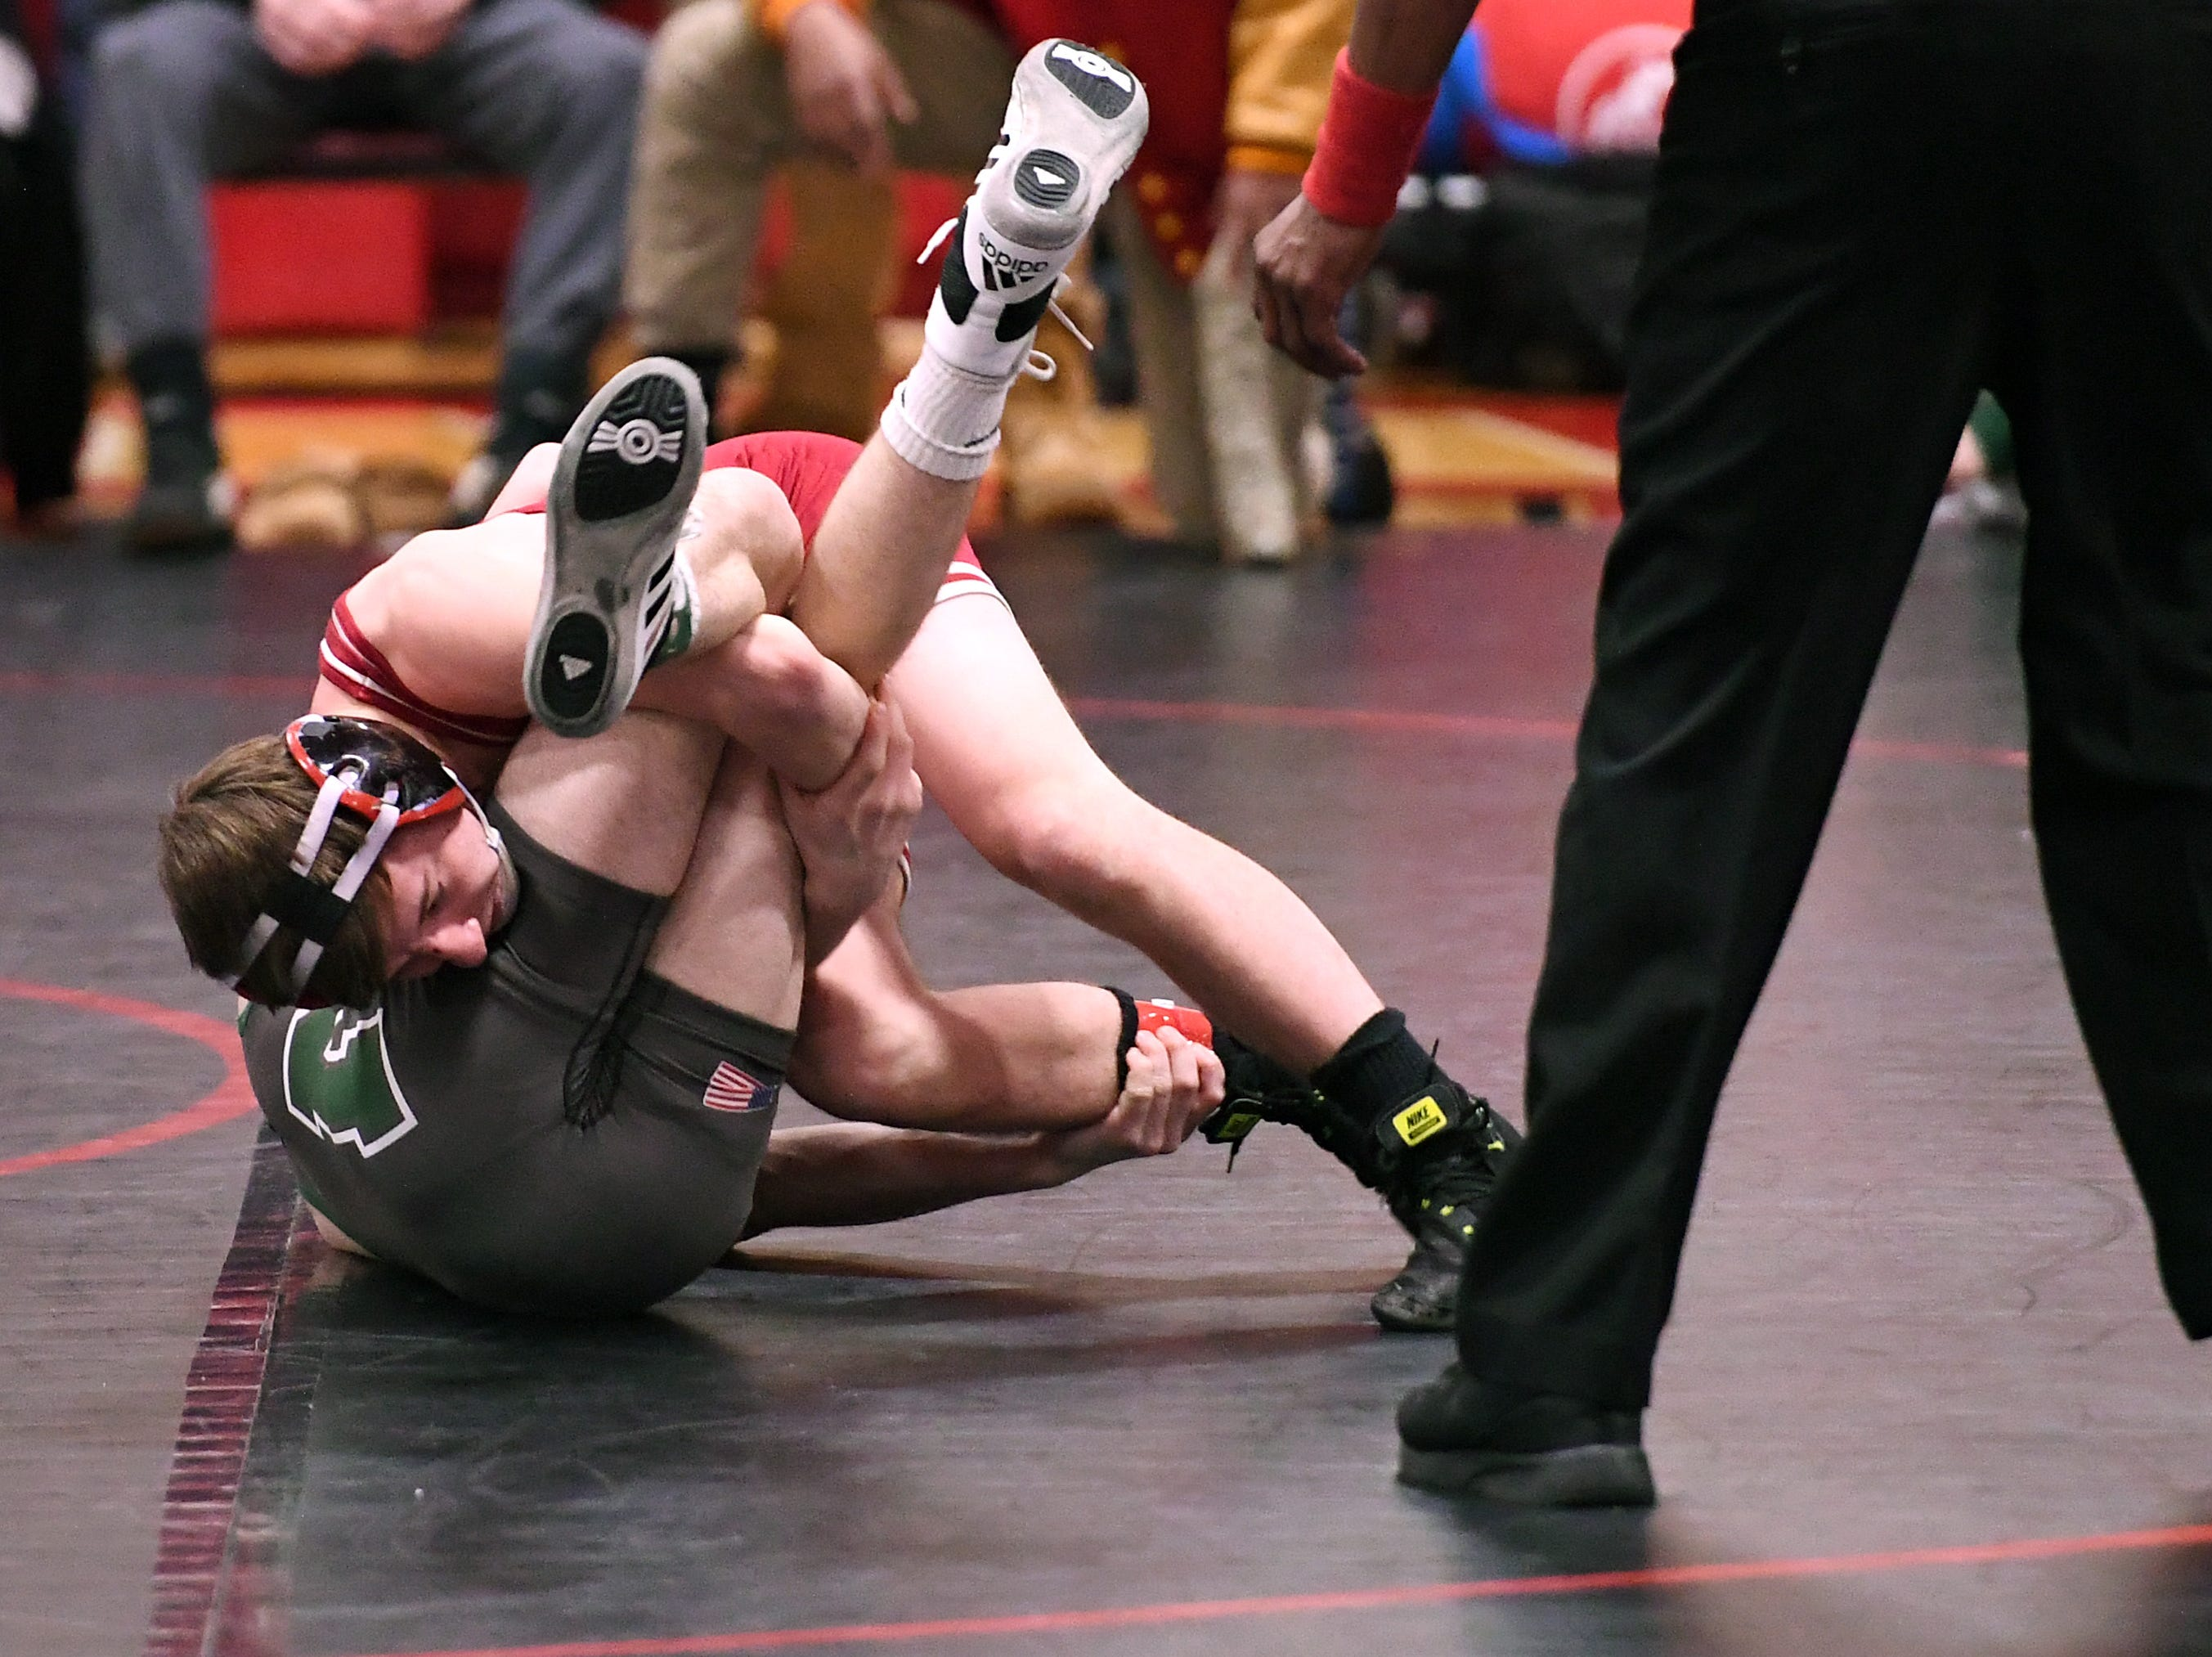 Morris County Tournament wrestling opening round at  Mount Olive High School on Friday, January 25, 2019. (top) Alan Haynes of Whippany Park vs. Luke DeFillippo of Montville in their 120 pound match.